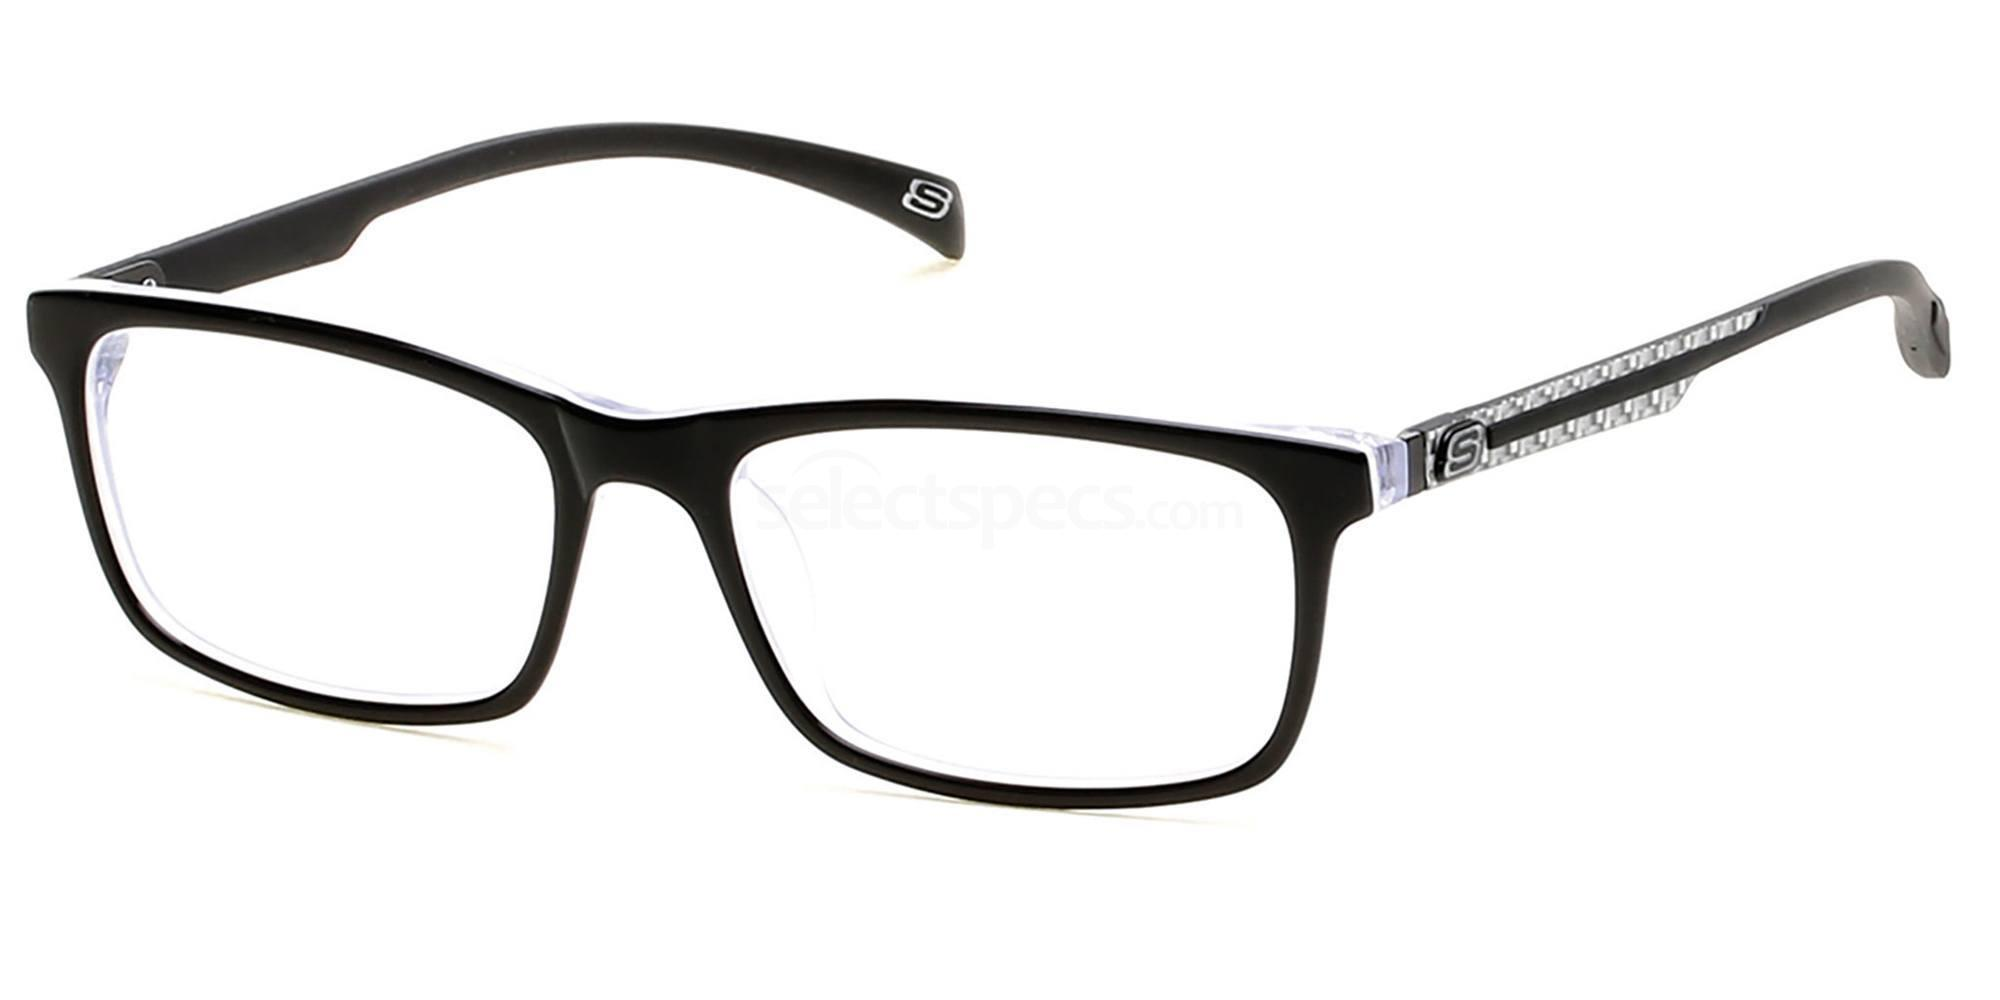 003 SE3180 Glasses, Skechers